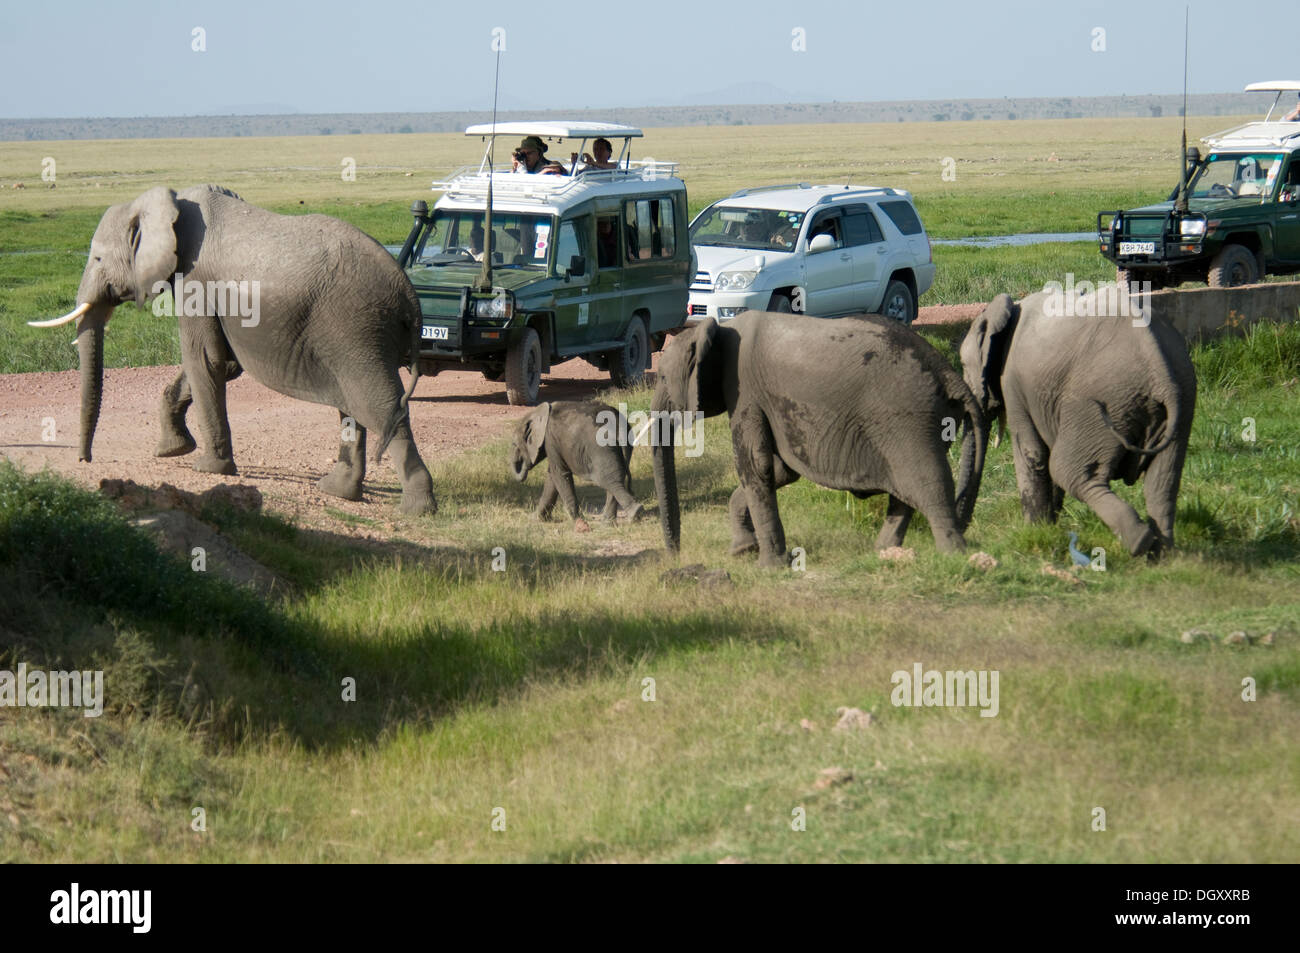 Elephants crossing road with tourist vehicles stopped - Stock Image